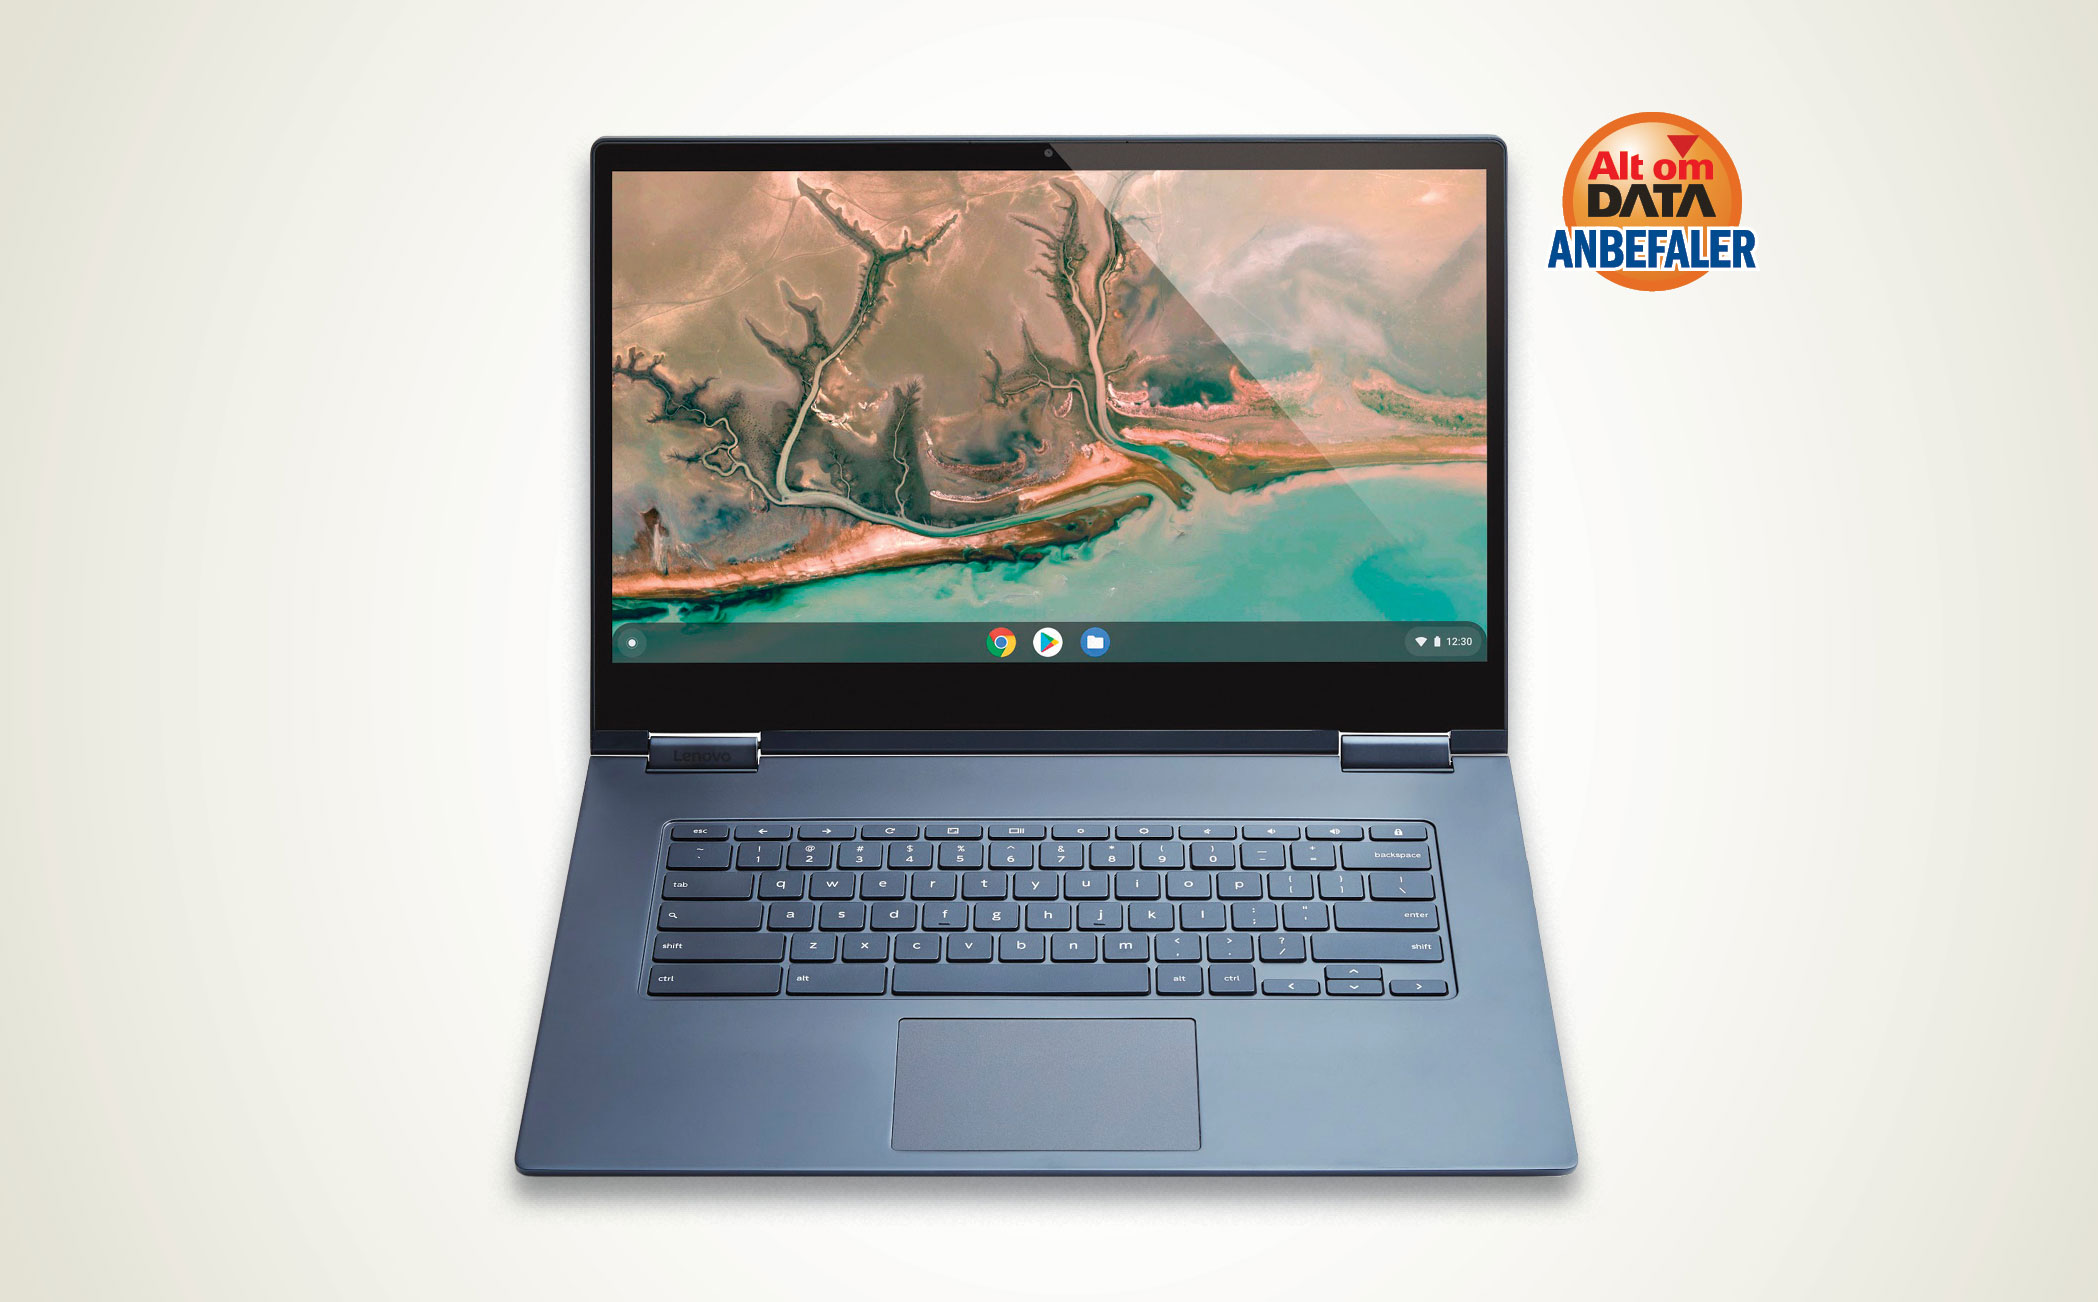 Lenovo Yoga Chromebook C630 [TEST]: Formfuldendt Chromebook med flip-funktion